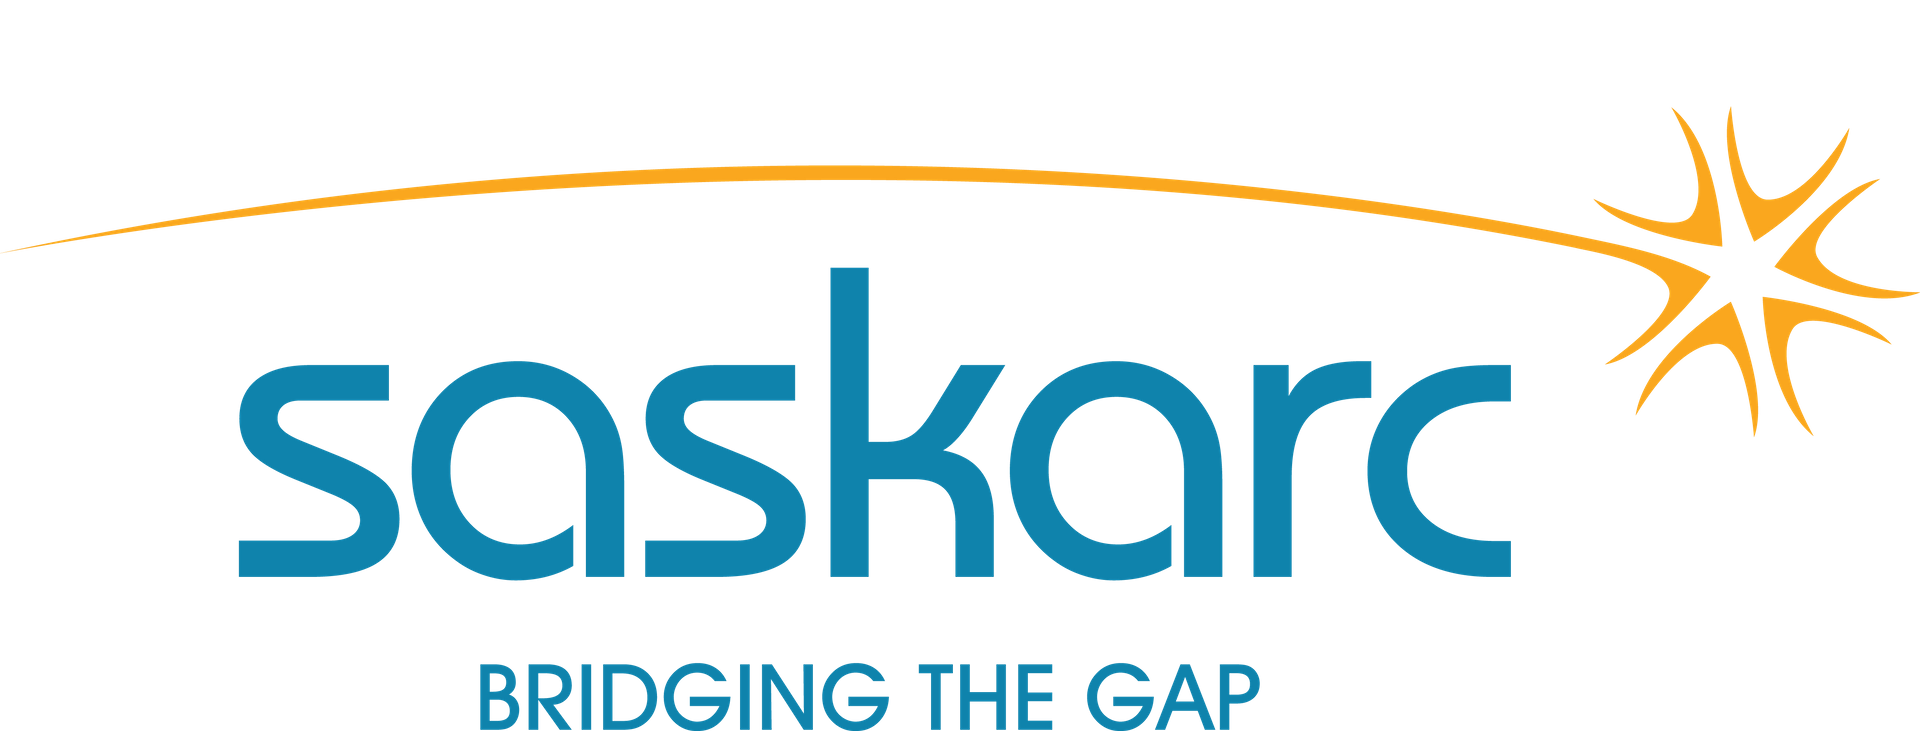 Saskarc Equipment logo